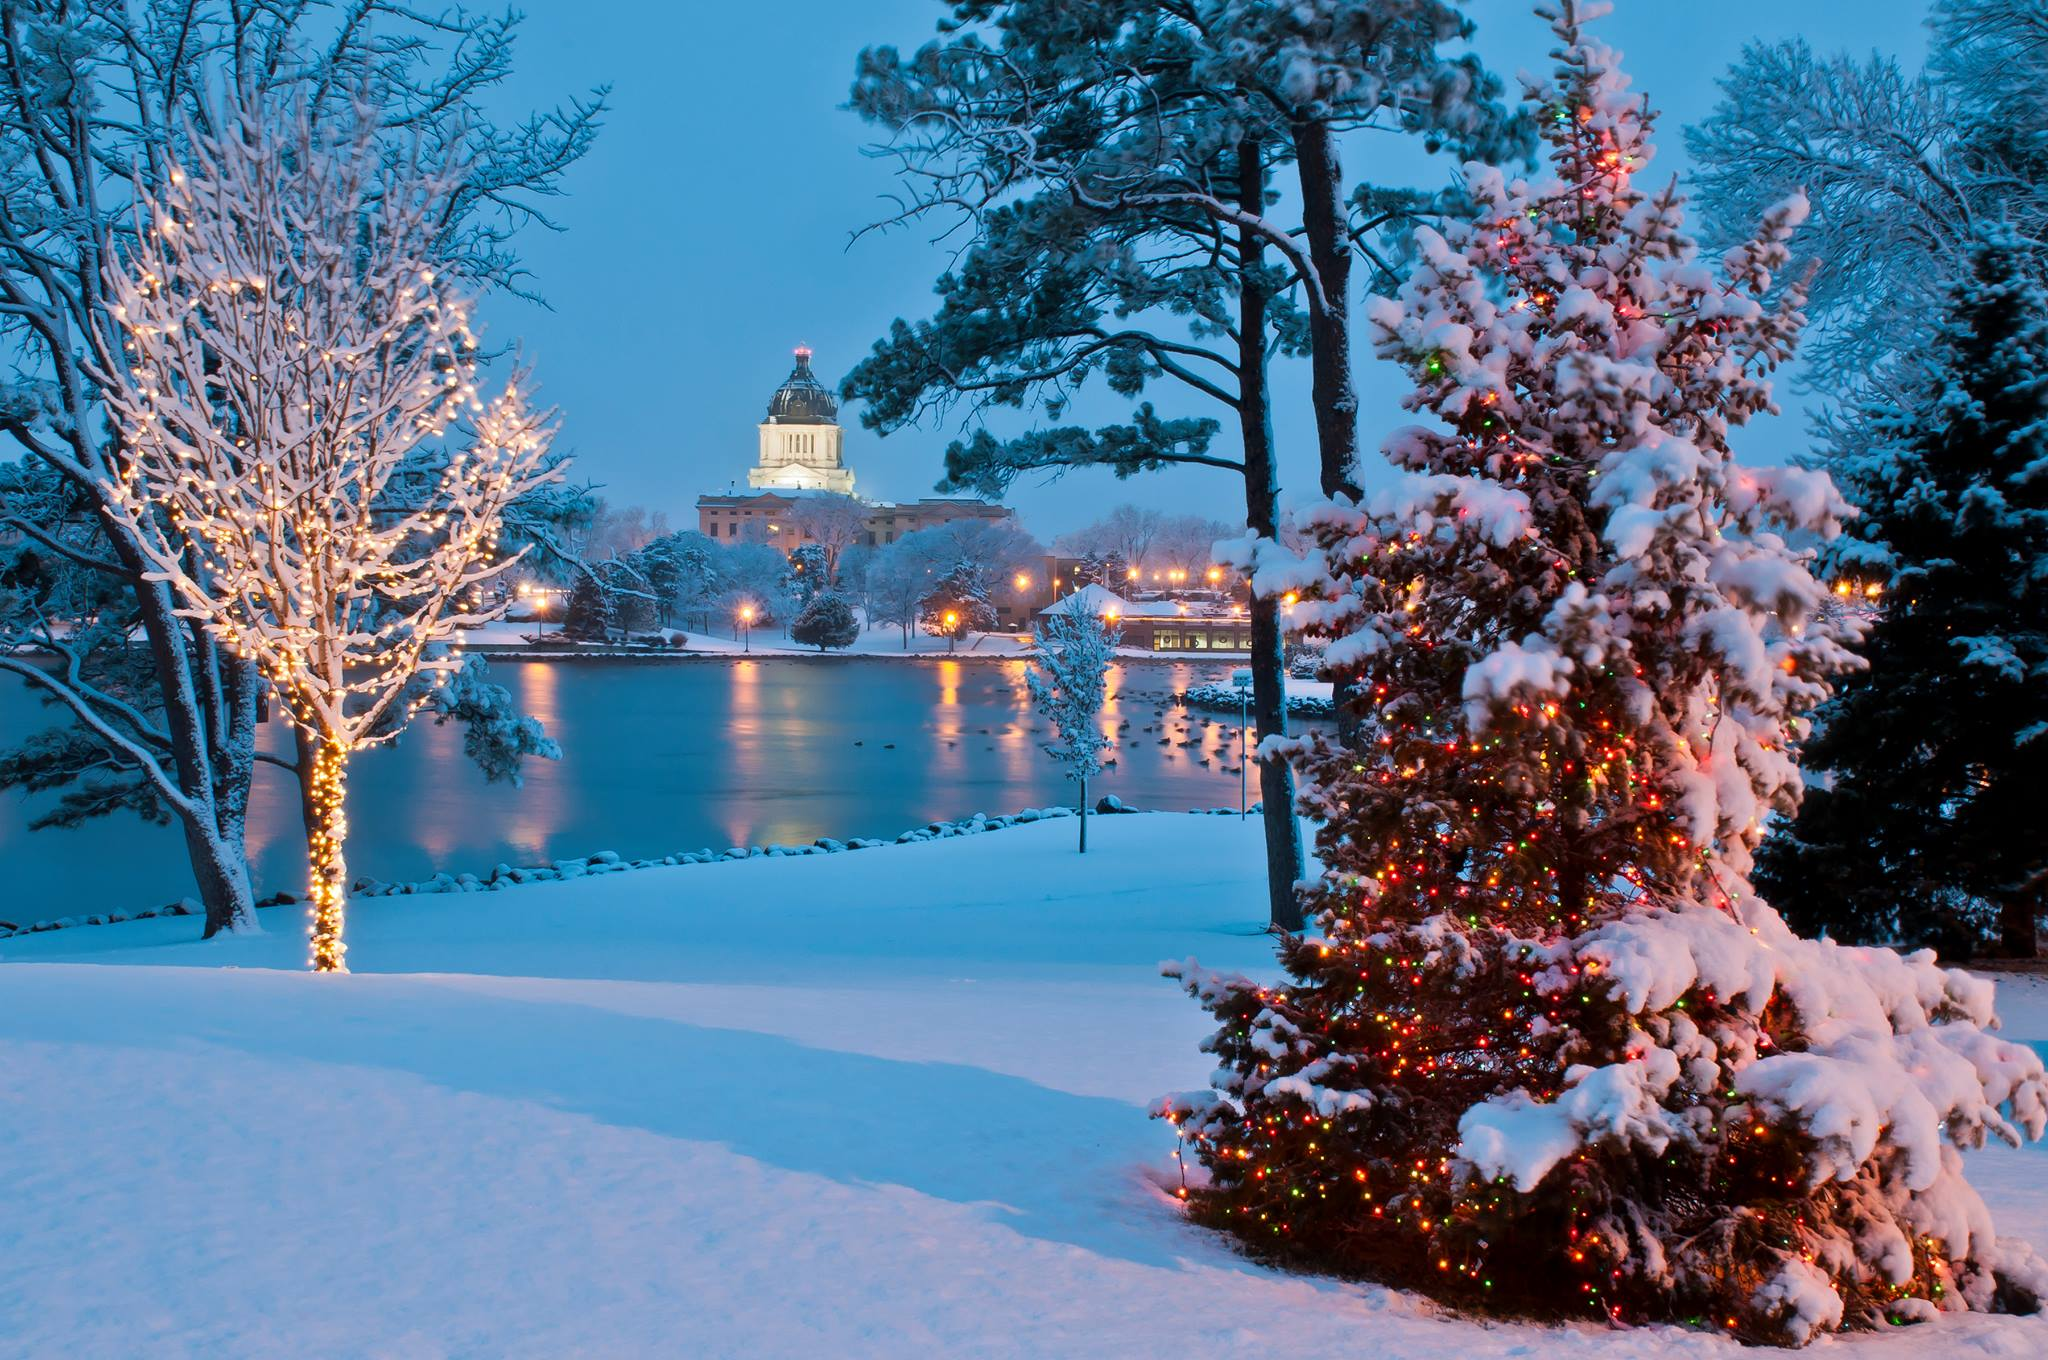 The 8 Best Christmas Towns In South Dakota In 2016